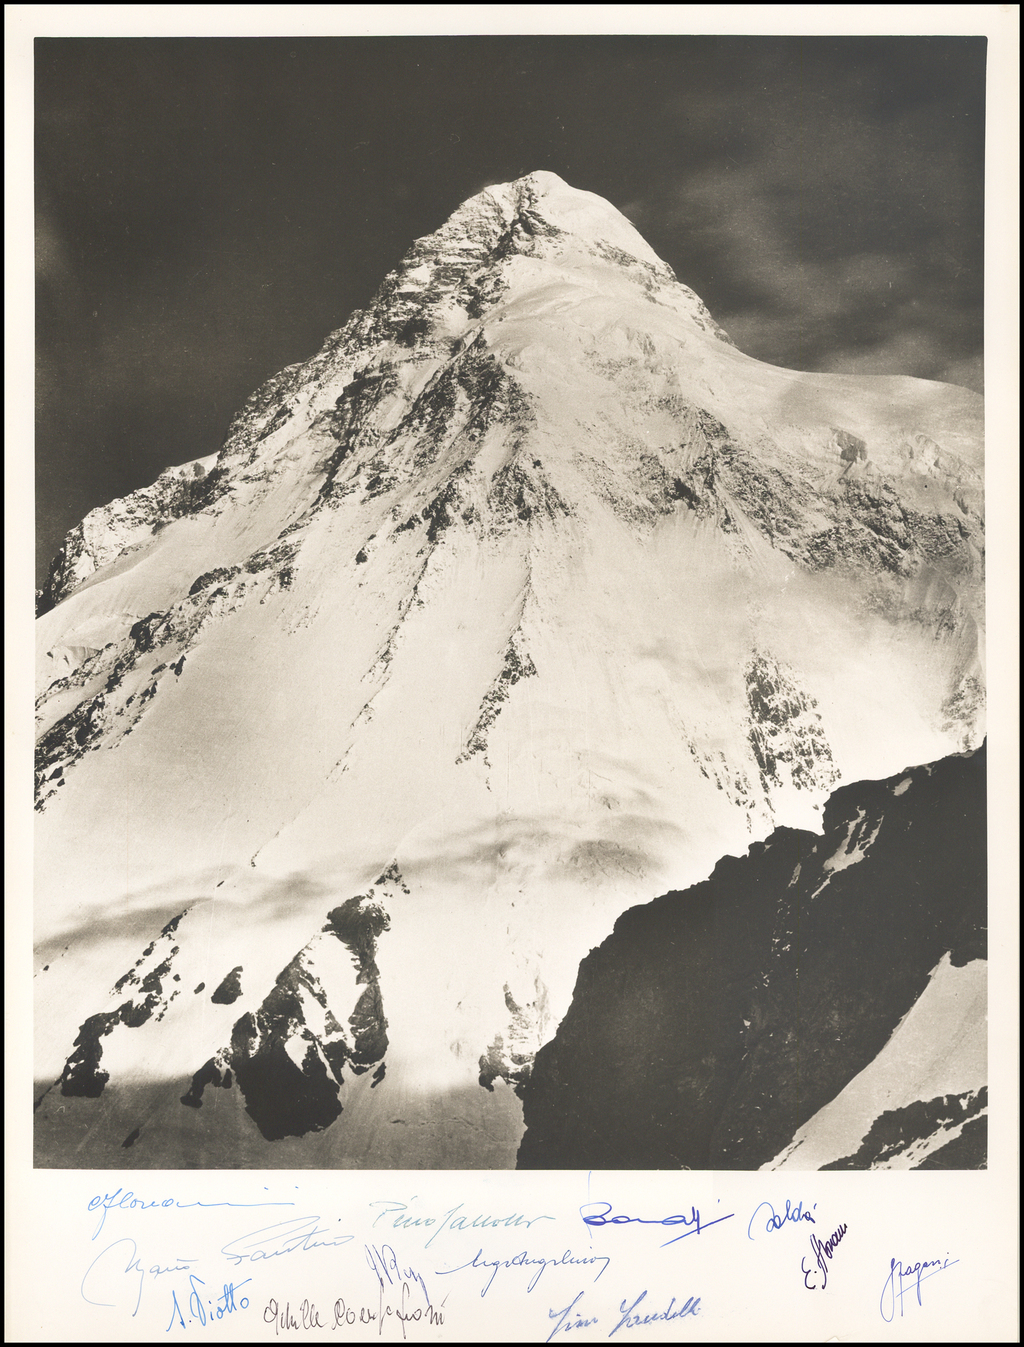 K2 - Southeast Face / Duke of Abruzzi Expedition (Signed By 1954 Italian Climbing Team) By Vittorio Sella